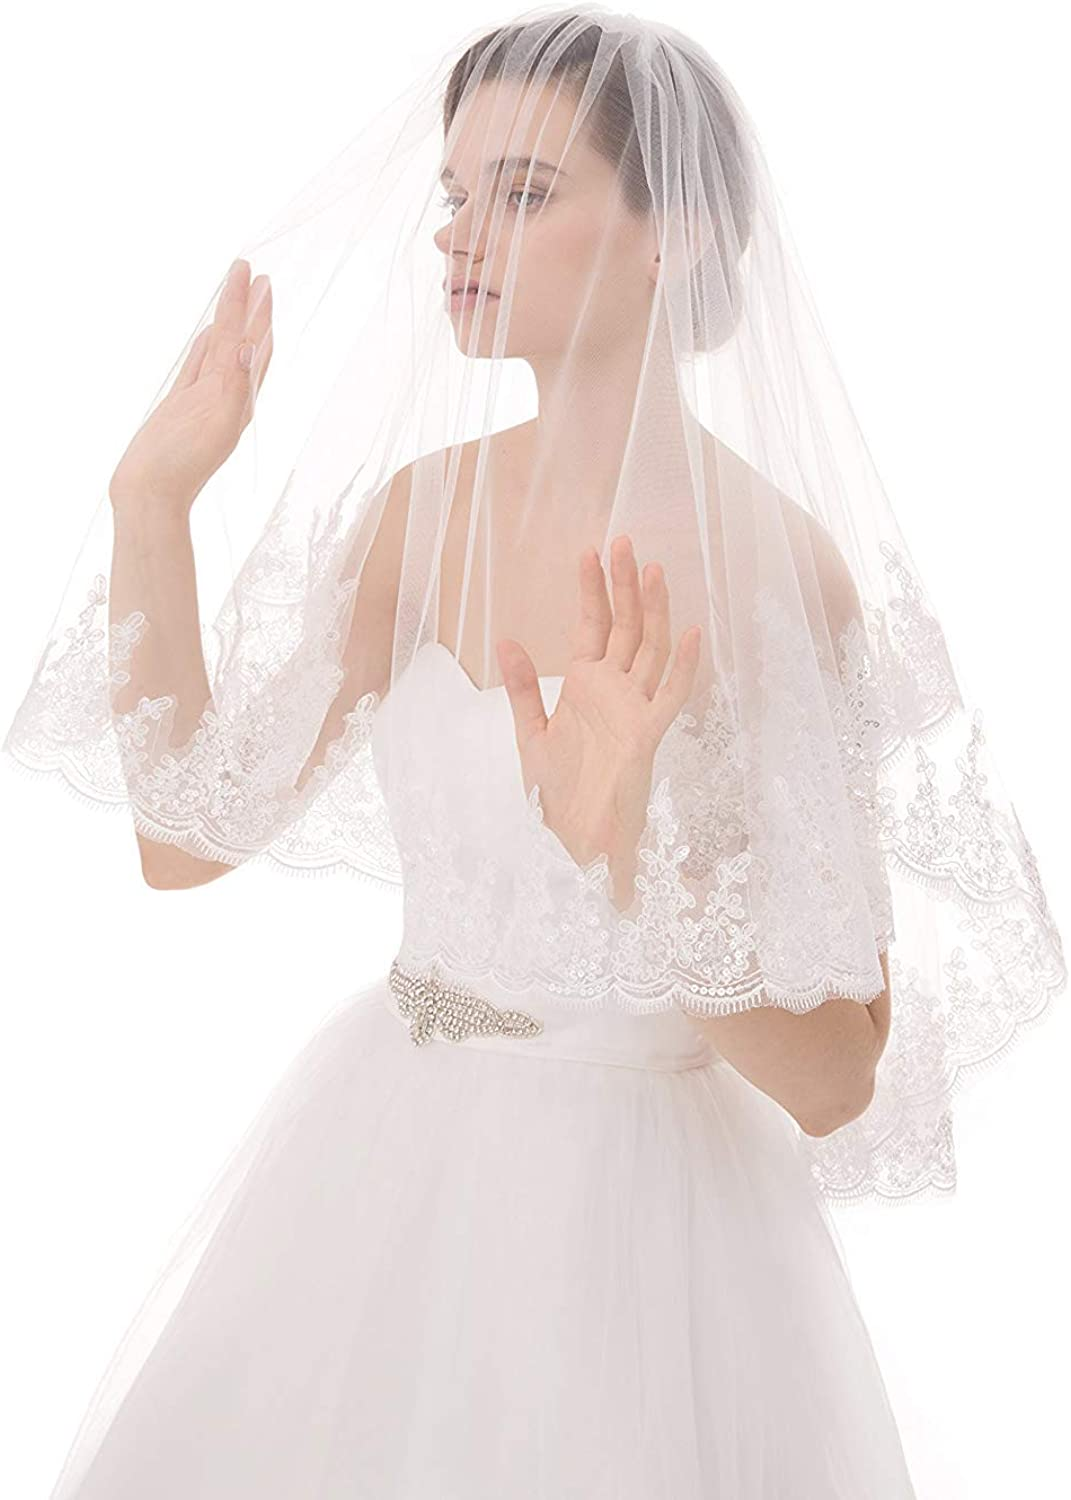 Eliffete 2Tier Tulle Wedding Bridal Veil Long Cathedral Veil for Bride with Comb